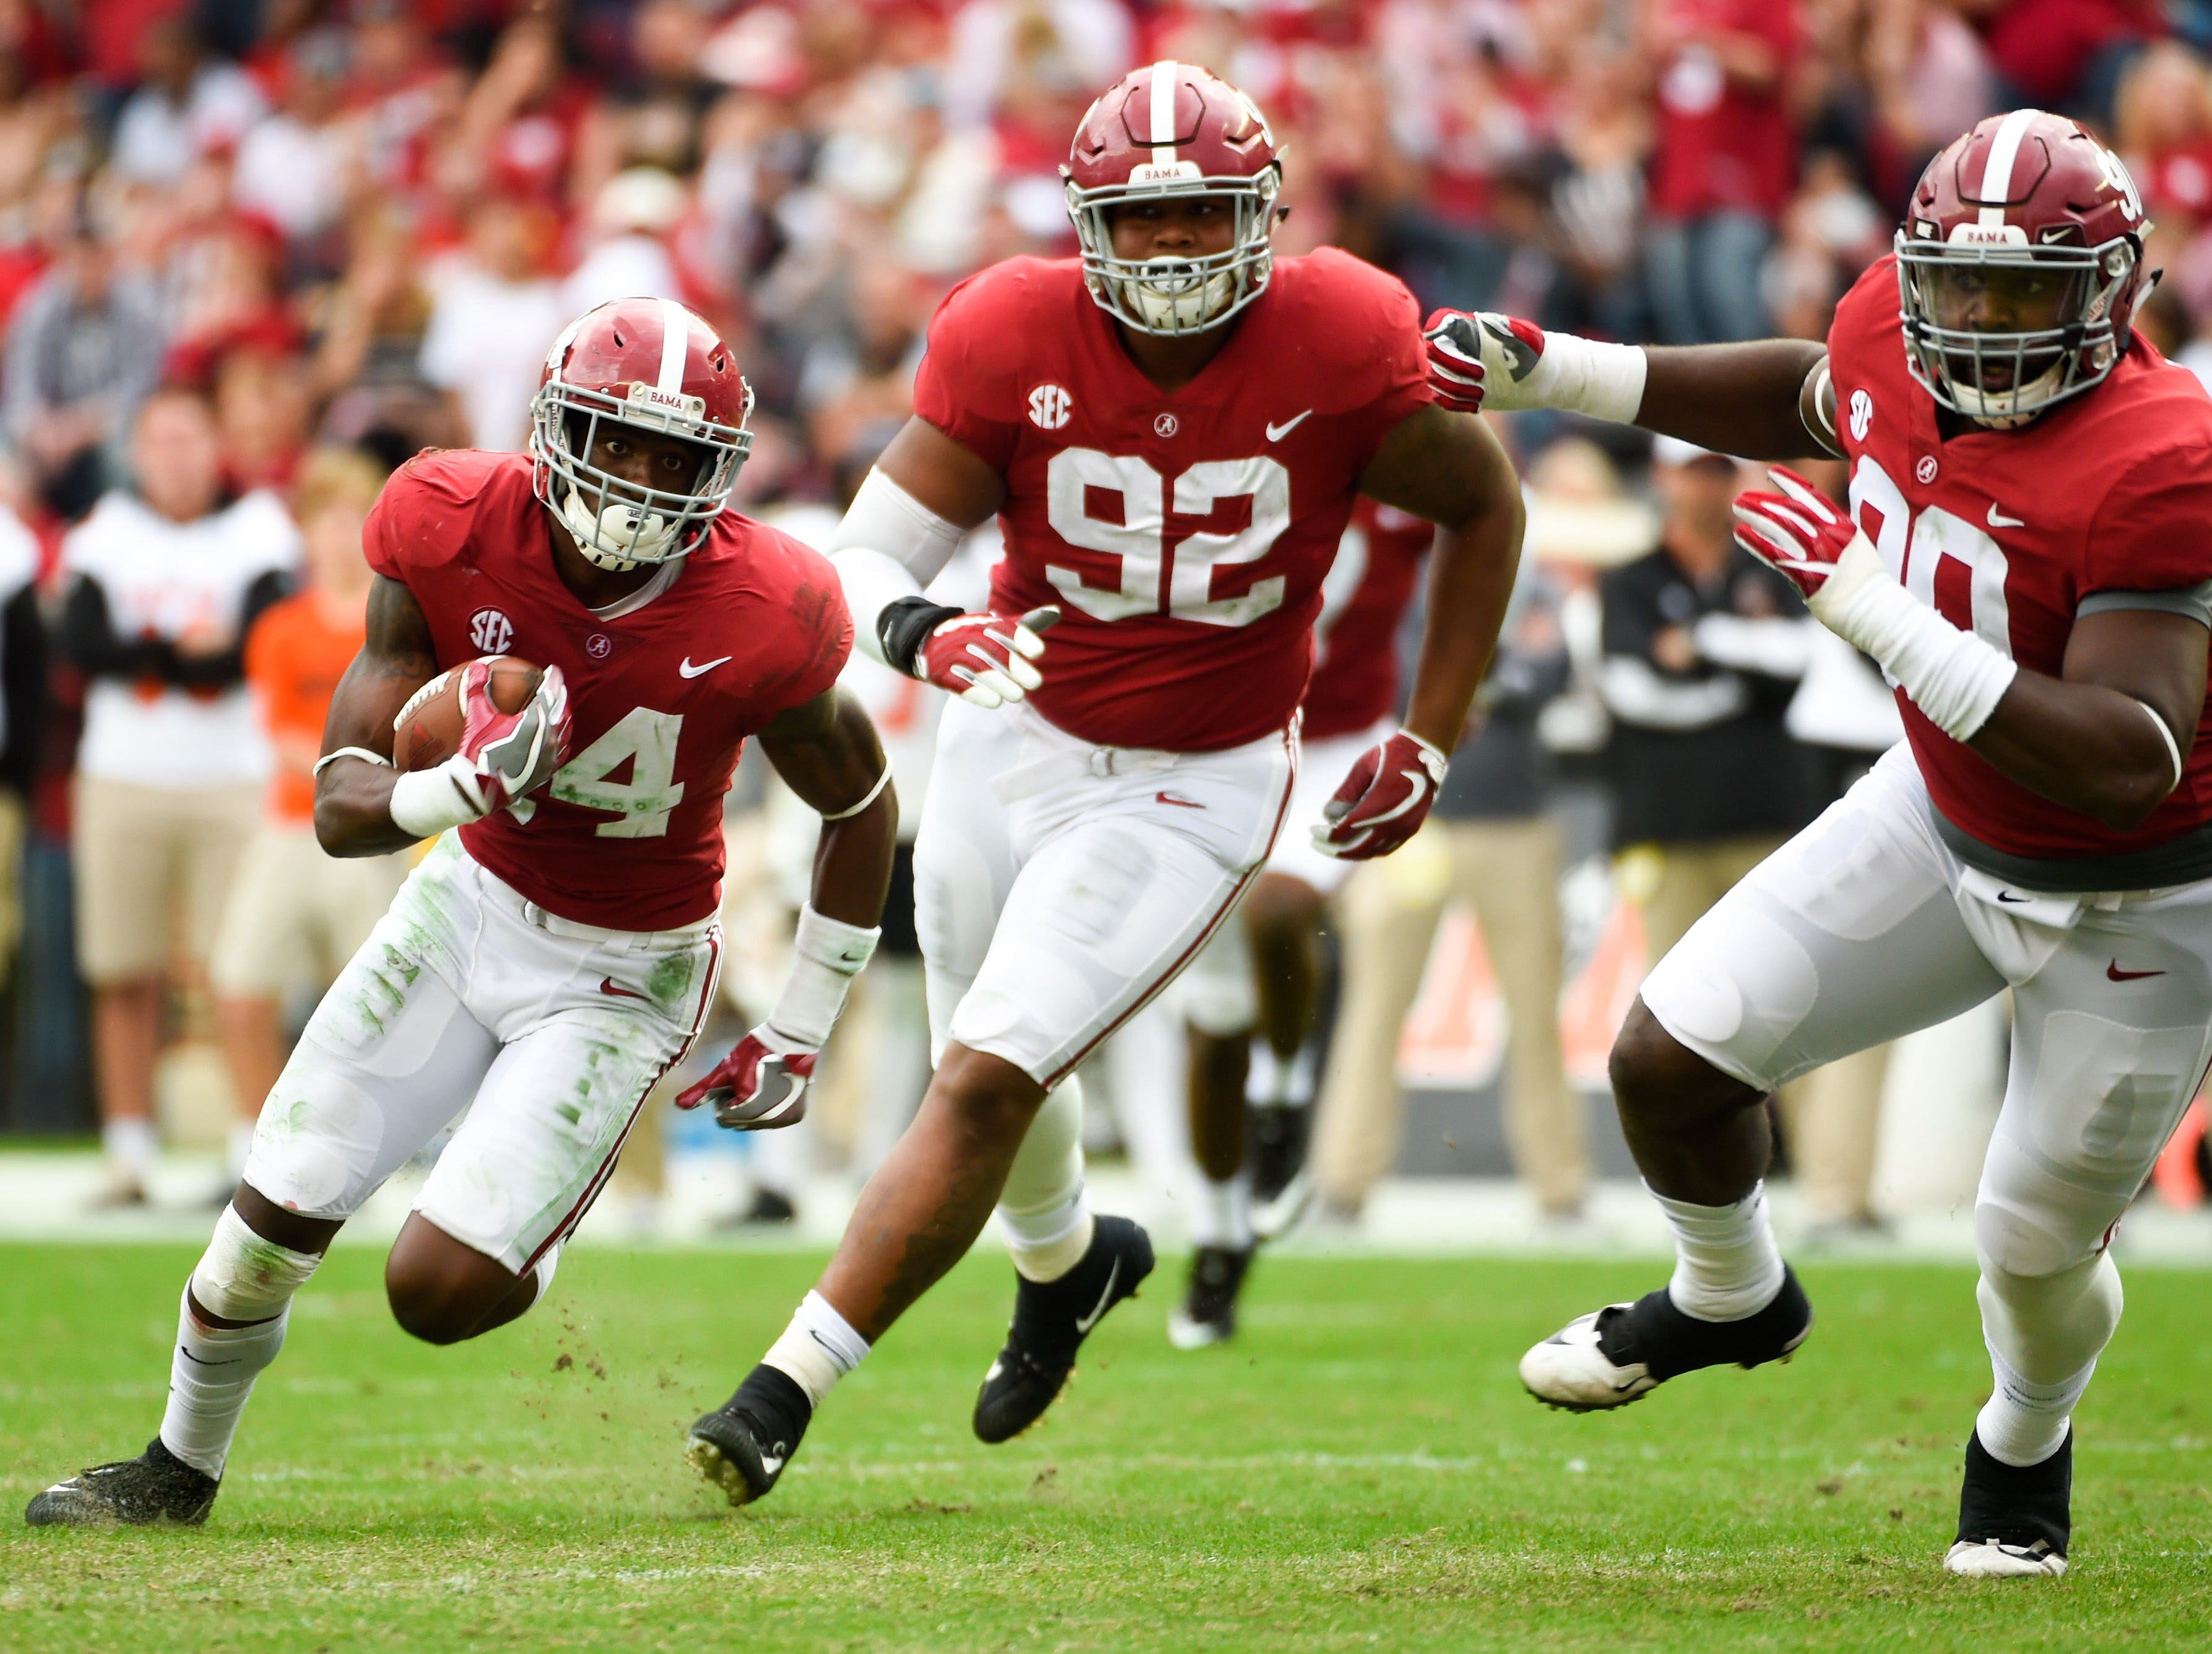 Alabama safety Deionte Thompson (14) returns an interception during a game against Mercer at Bryant-Denny Stadium.